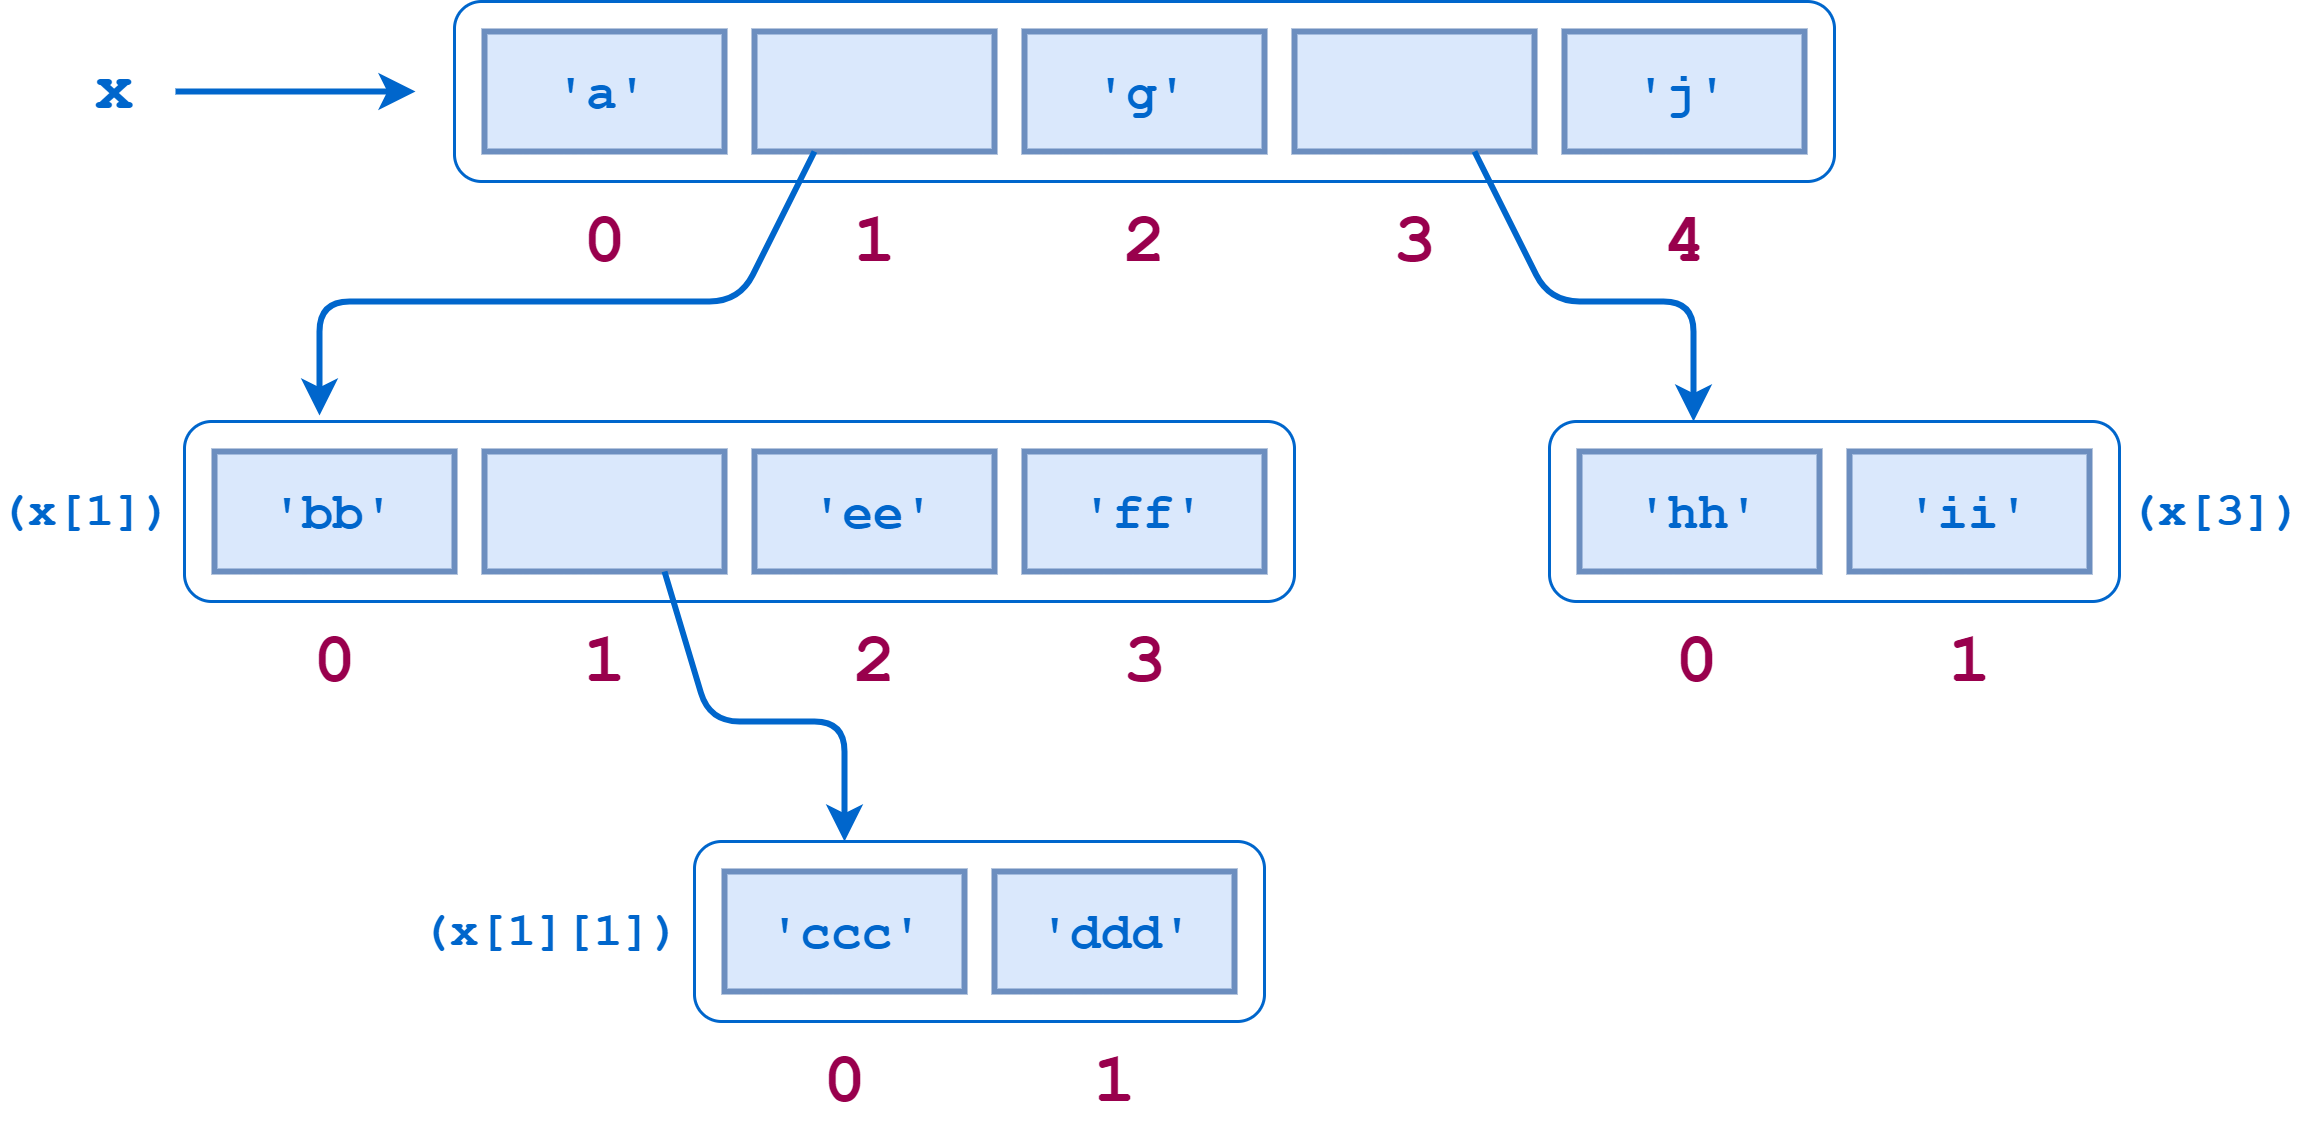 Nested lists diagram